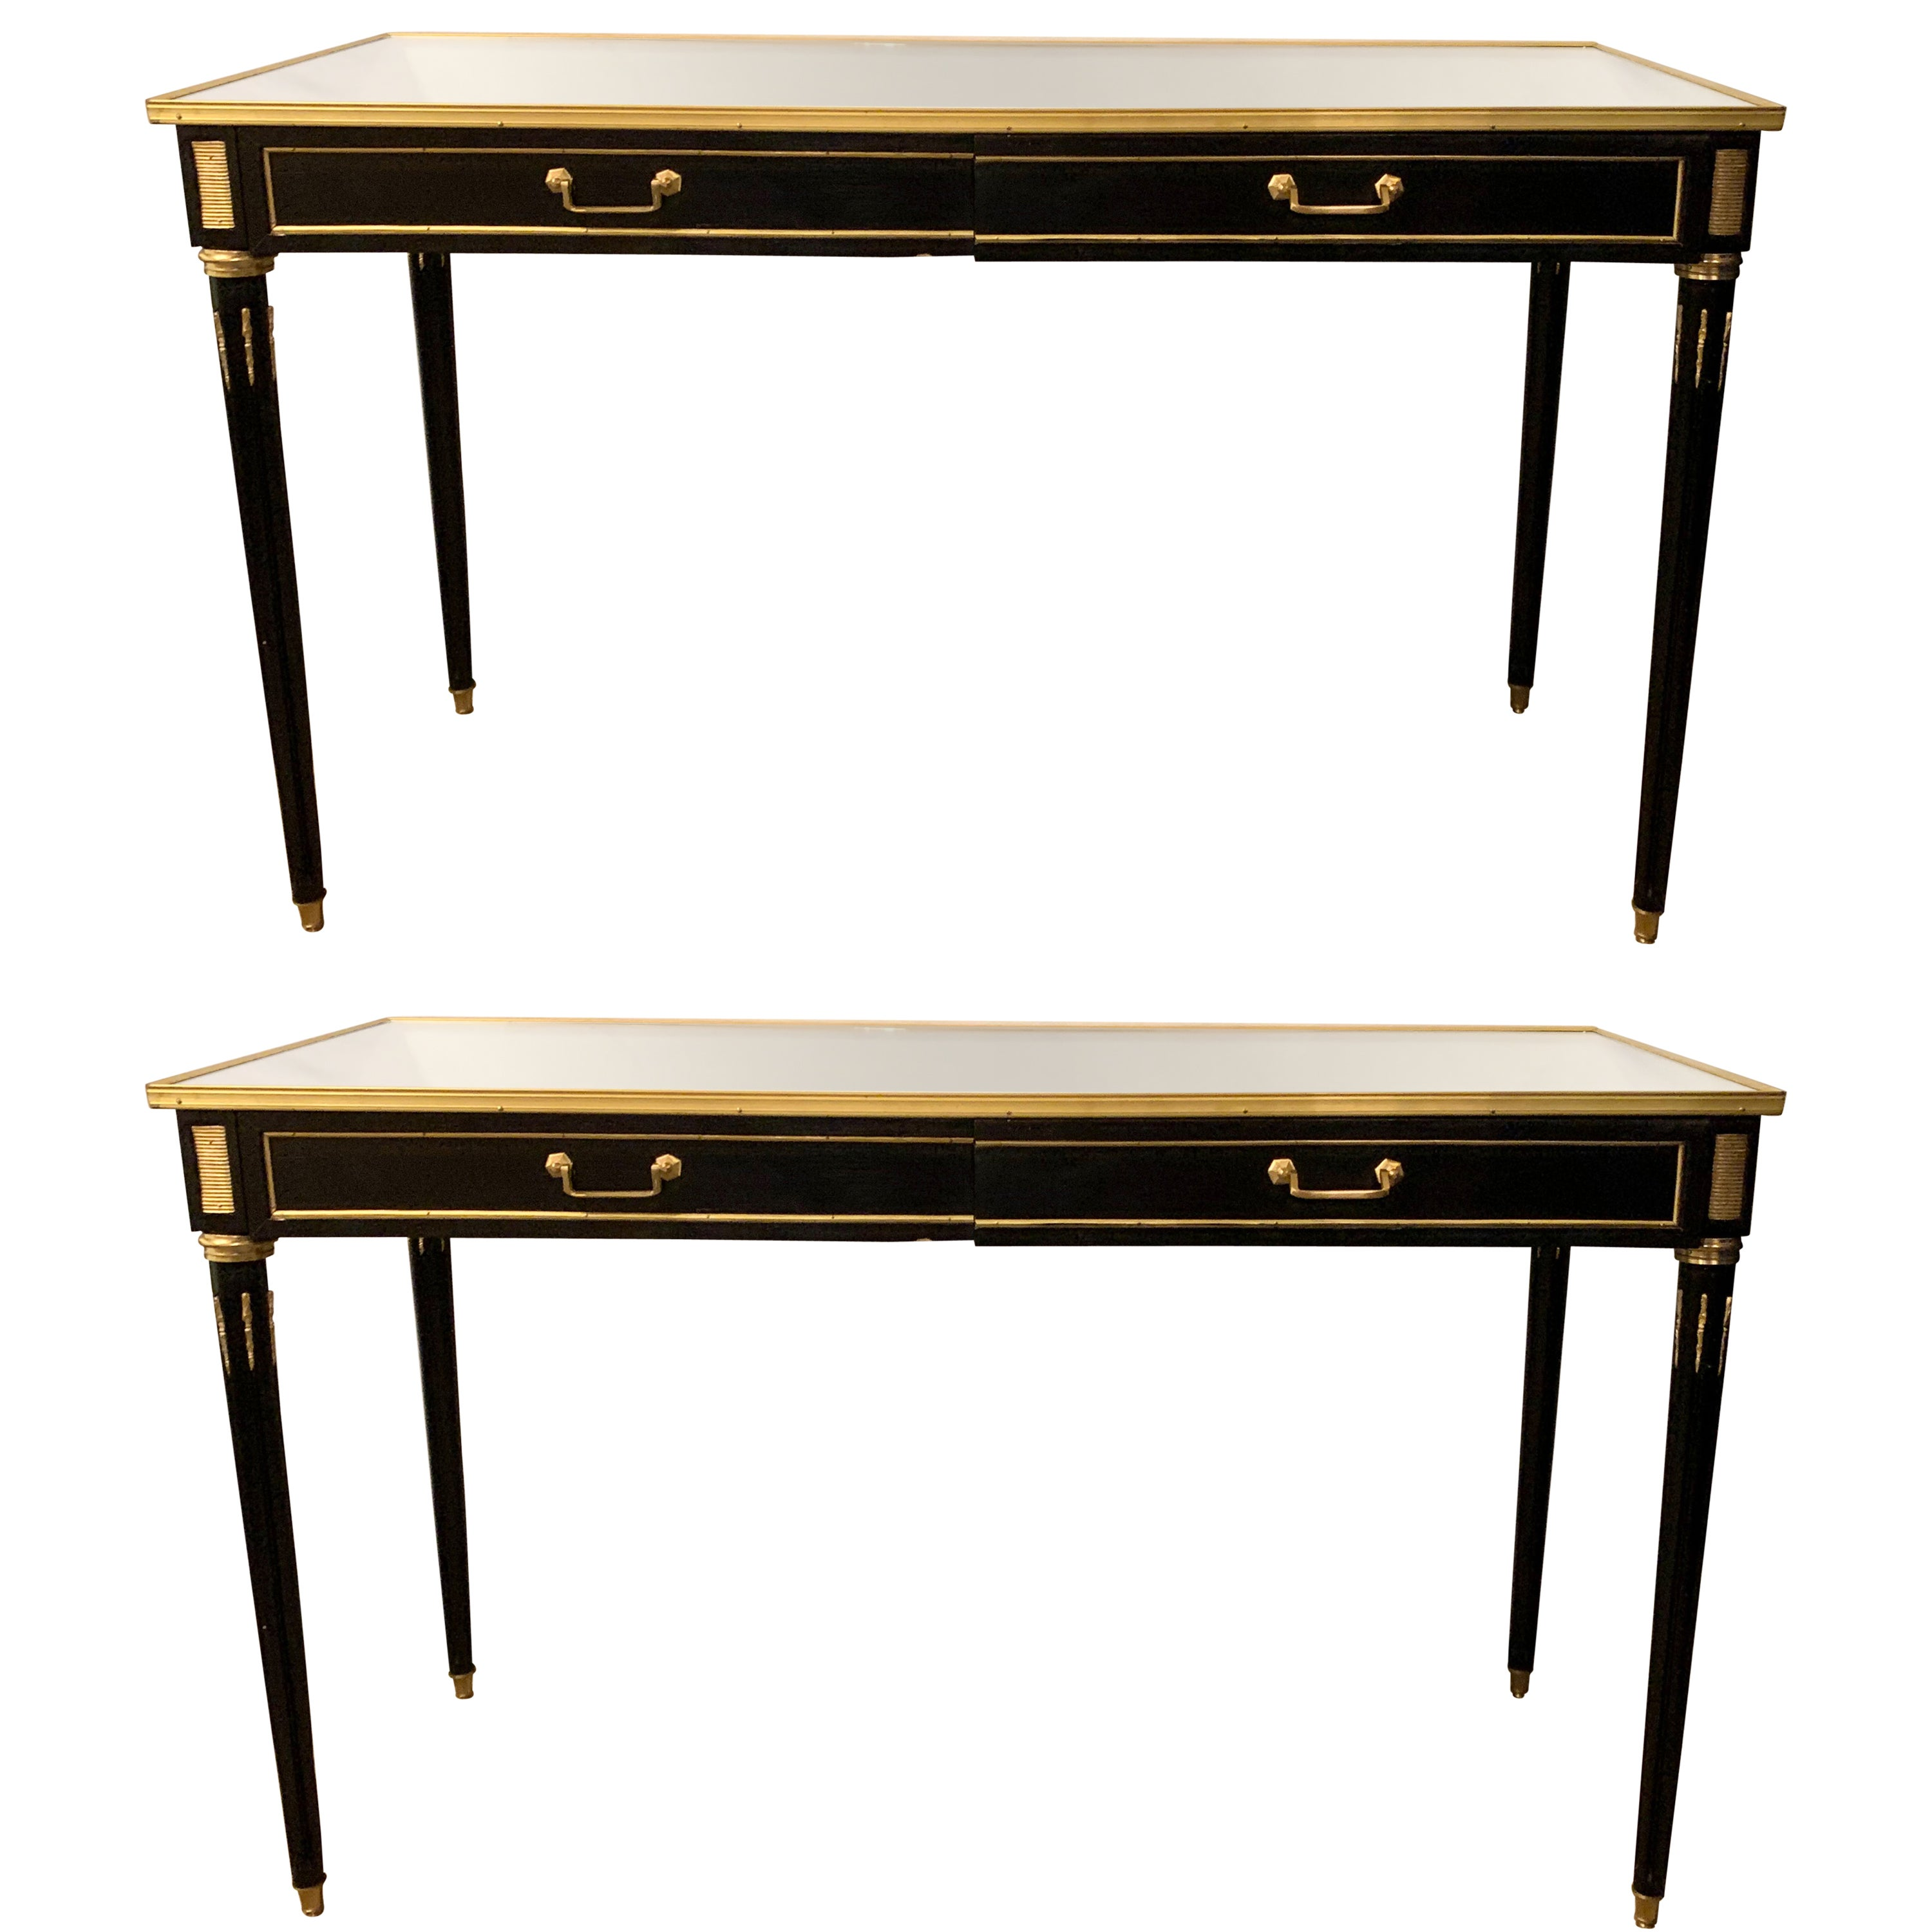 Ebony Maison Jansen Style Mirror Top Two-Drawer Consoles Table / Sideboards Pair